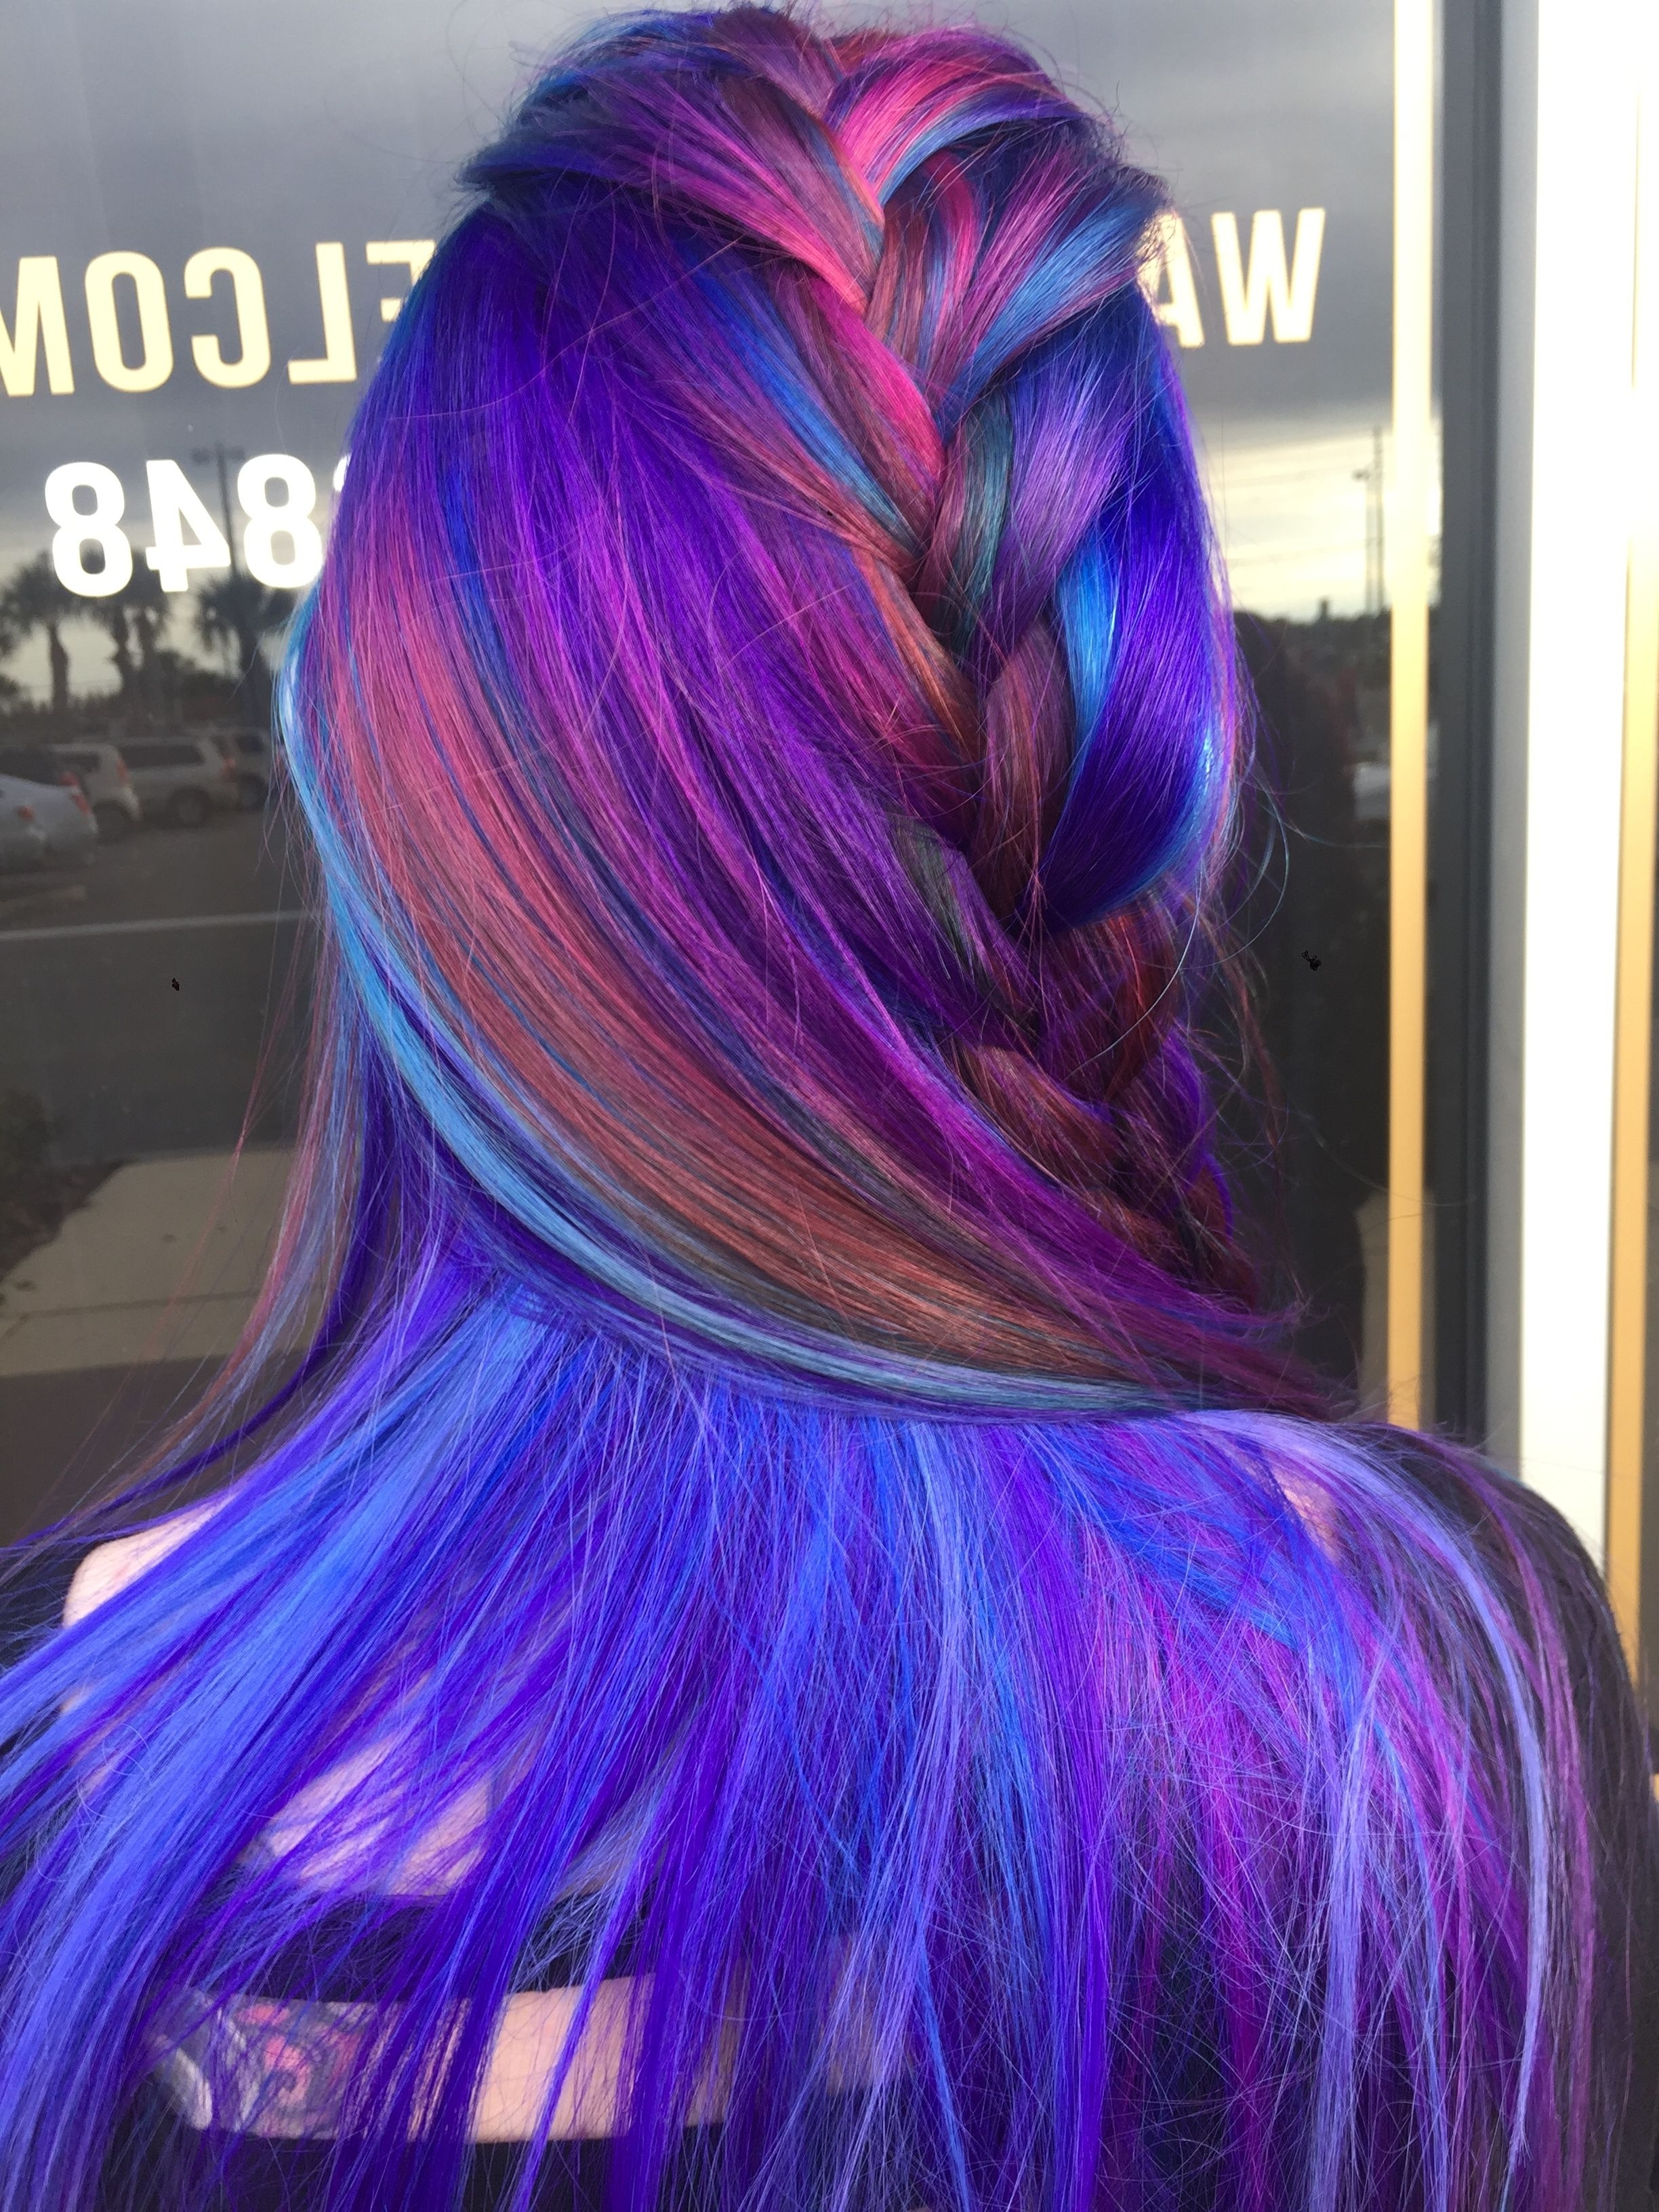 My Work With Regard To Widely Used Extra Long Blue Rainbow Braids Hairstyles (View 12 of 15)